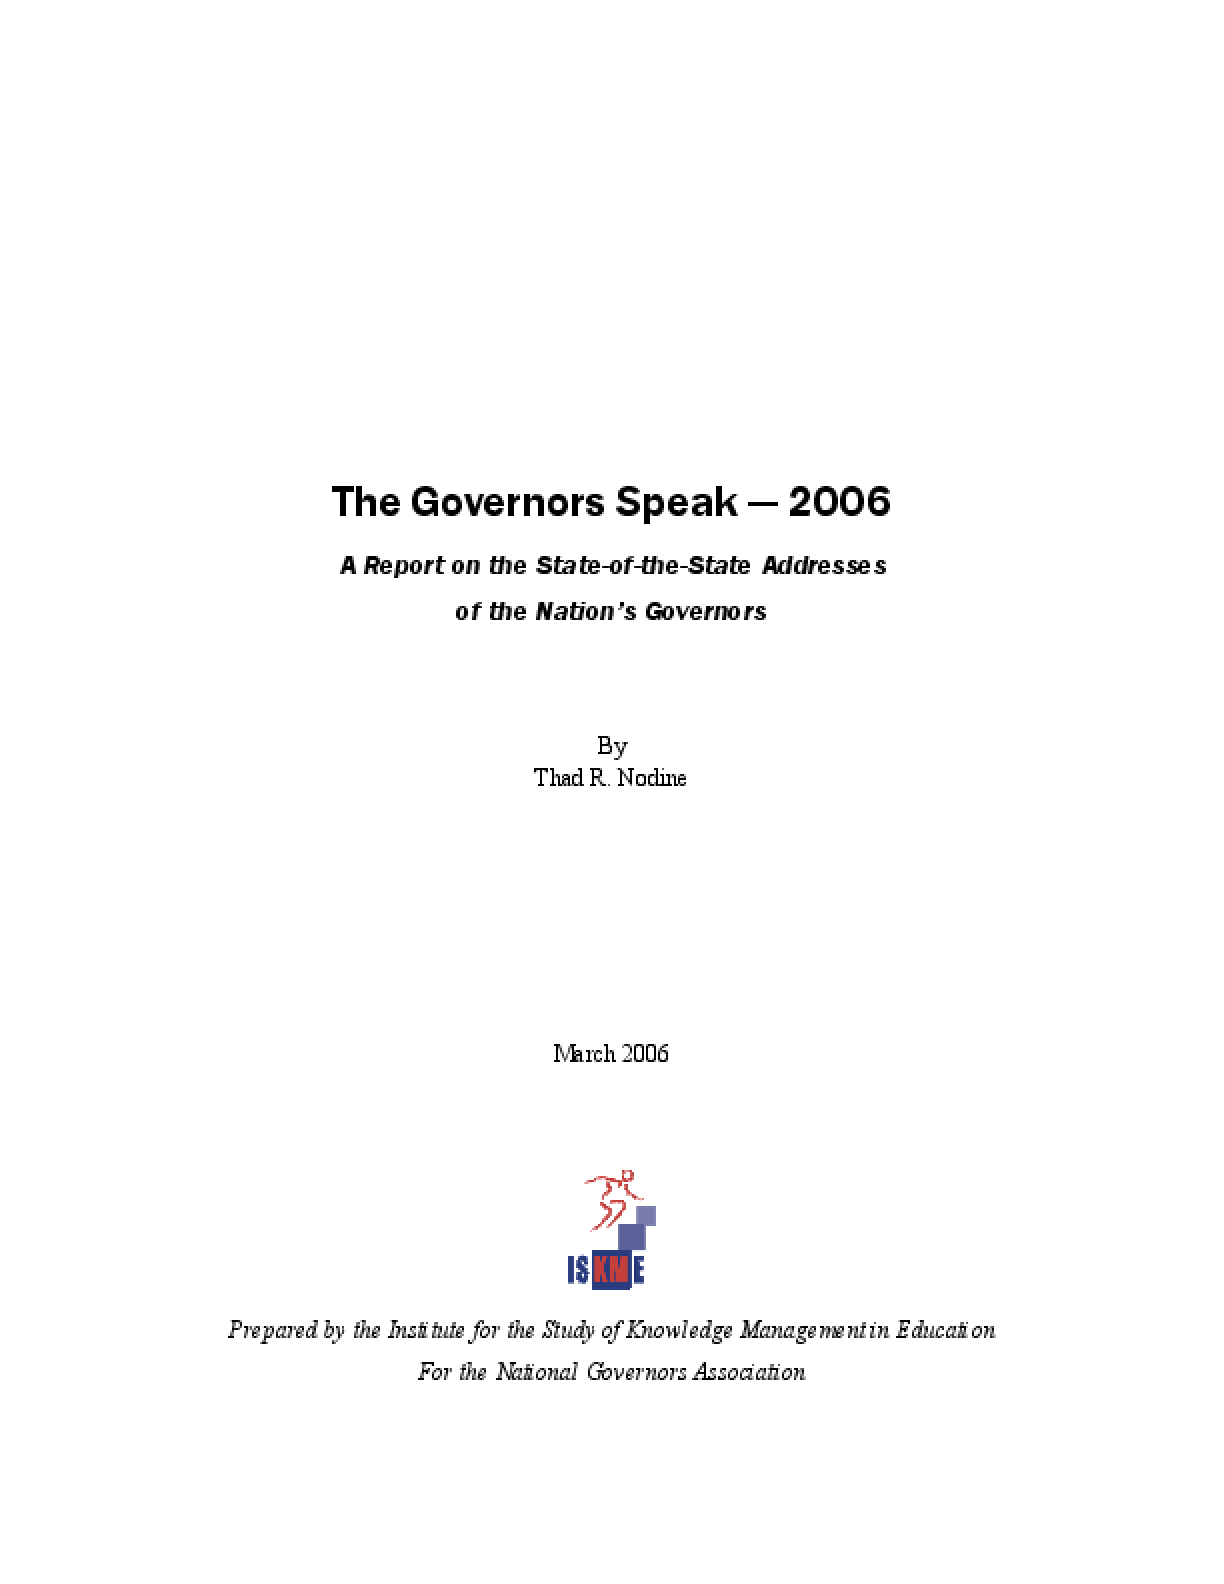 The Governors Speak 2006: A Report on the State-of-the-State Addresses of the Nation's Governors